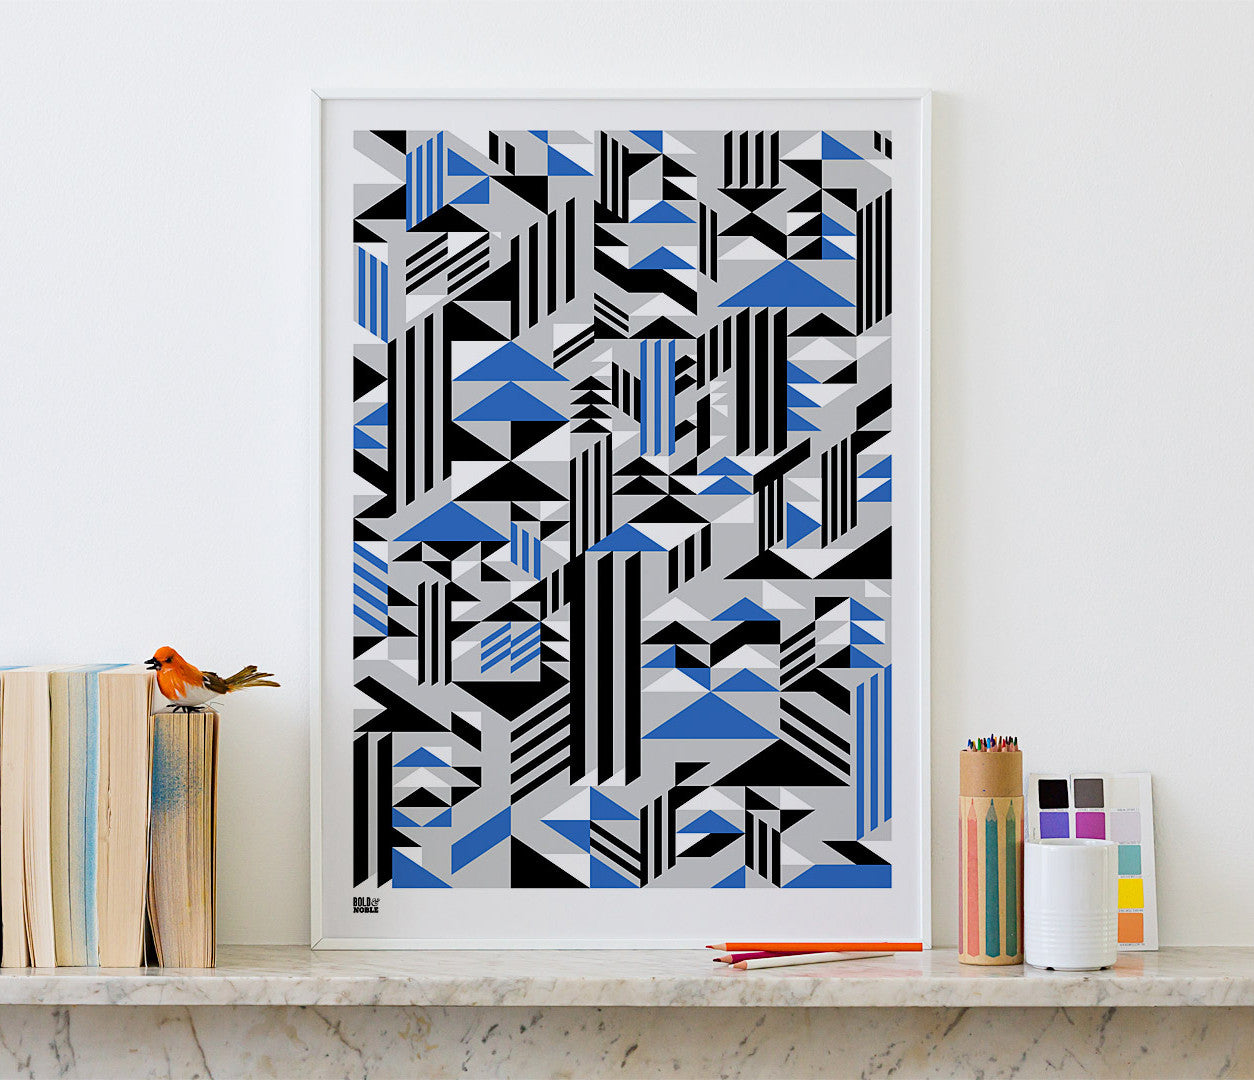 Pictures and Wall Art, Screen Printed Higher Geometric Screen Print in Blue and Grey